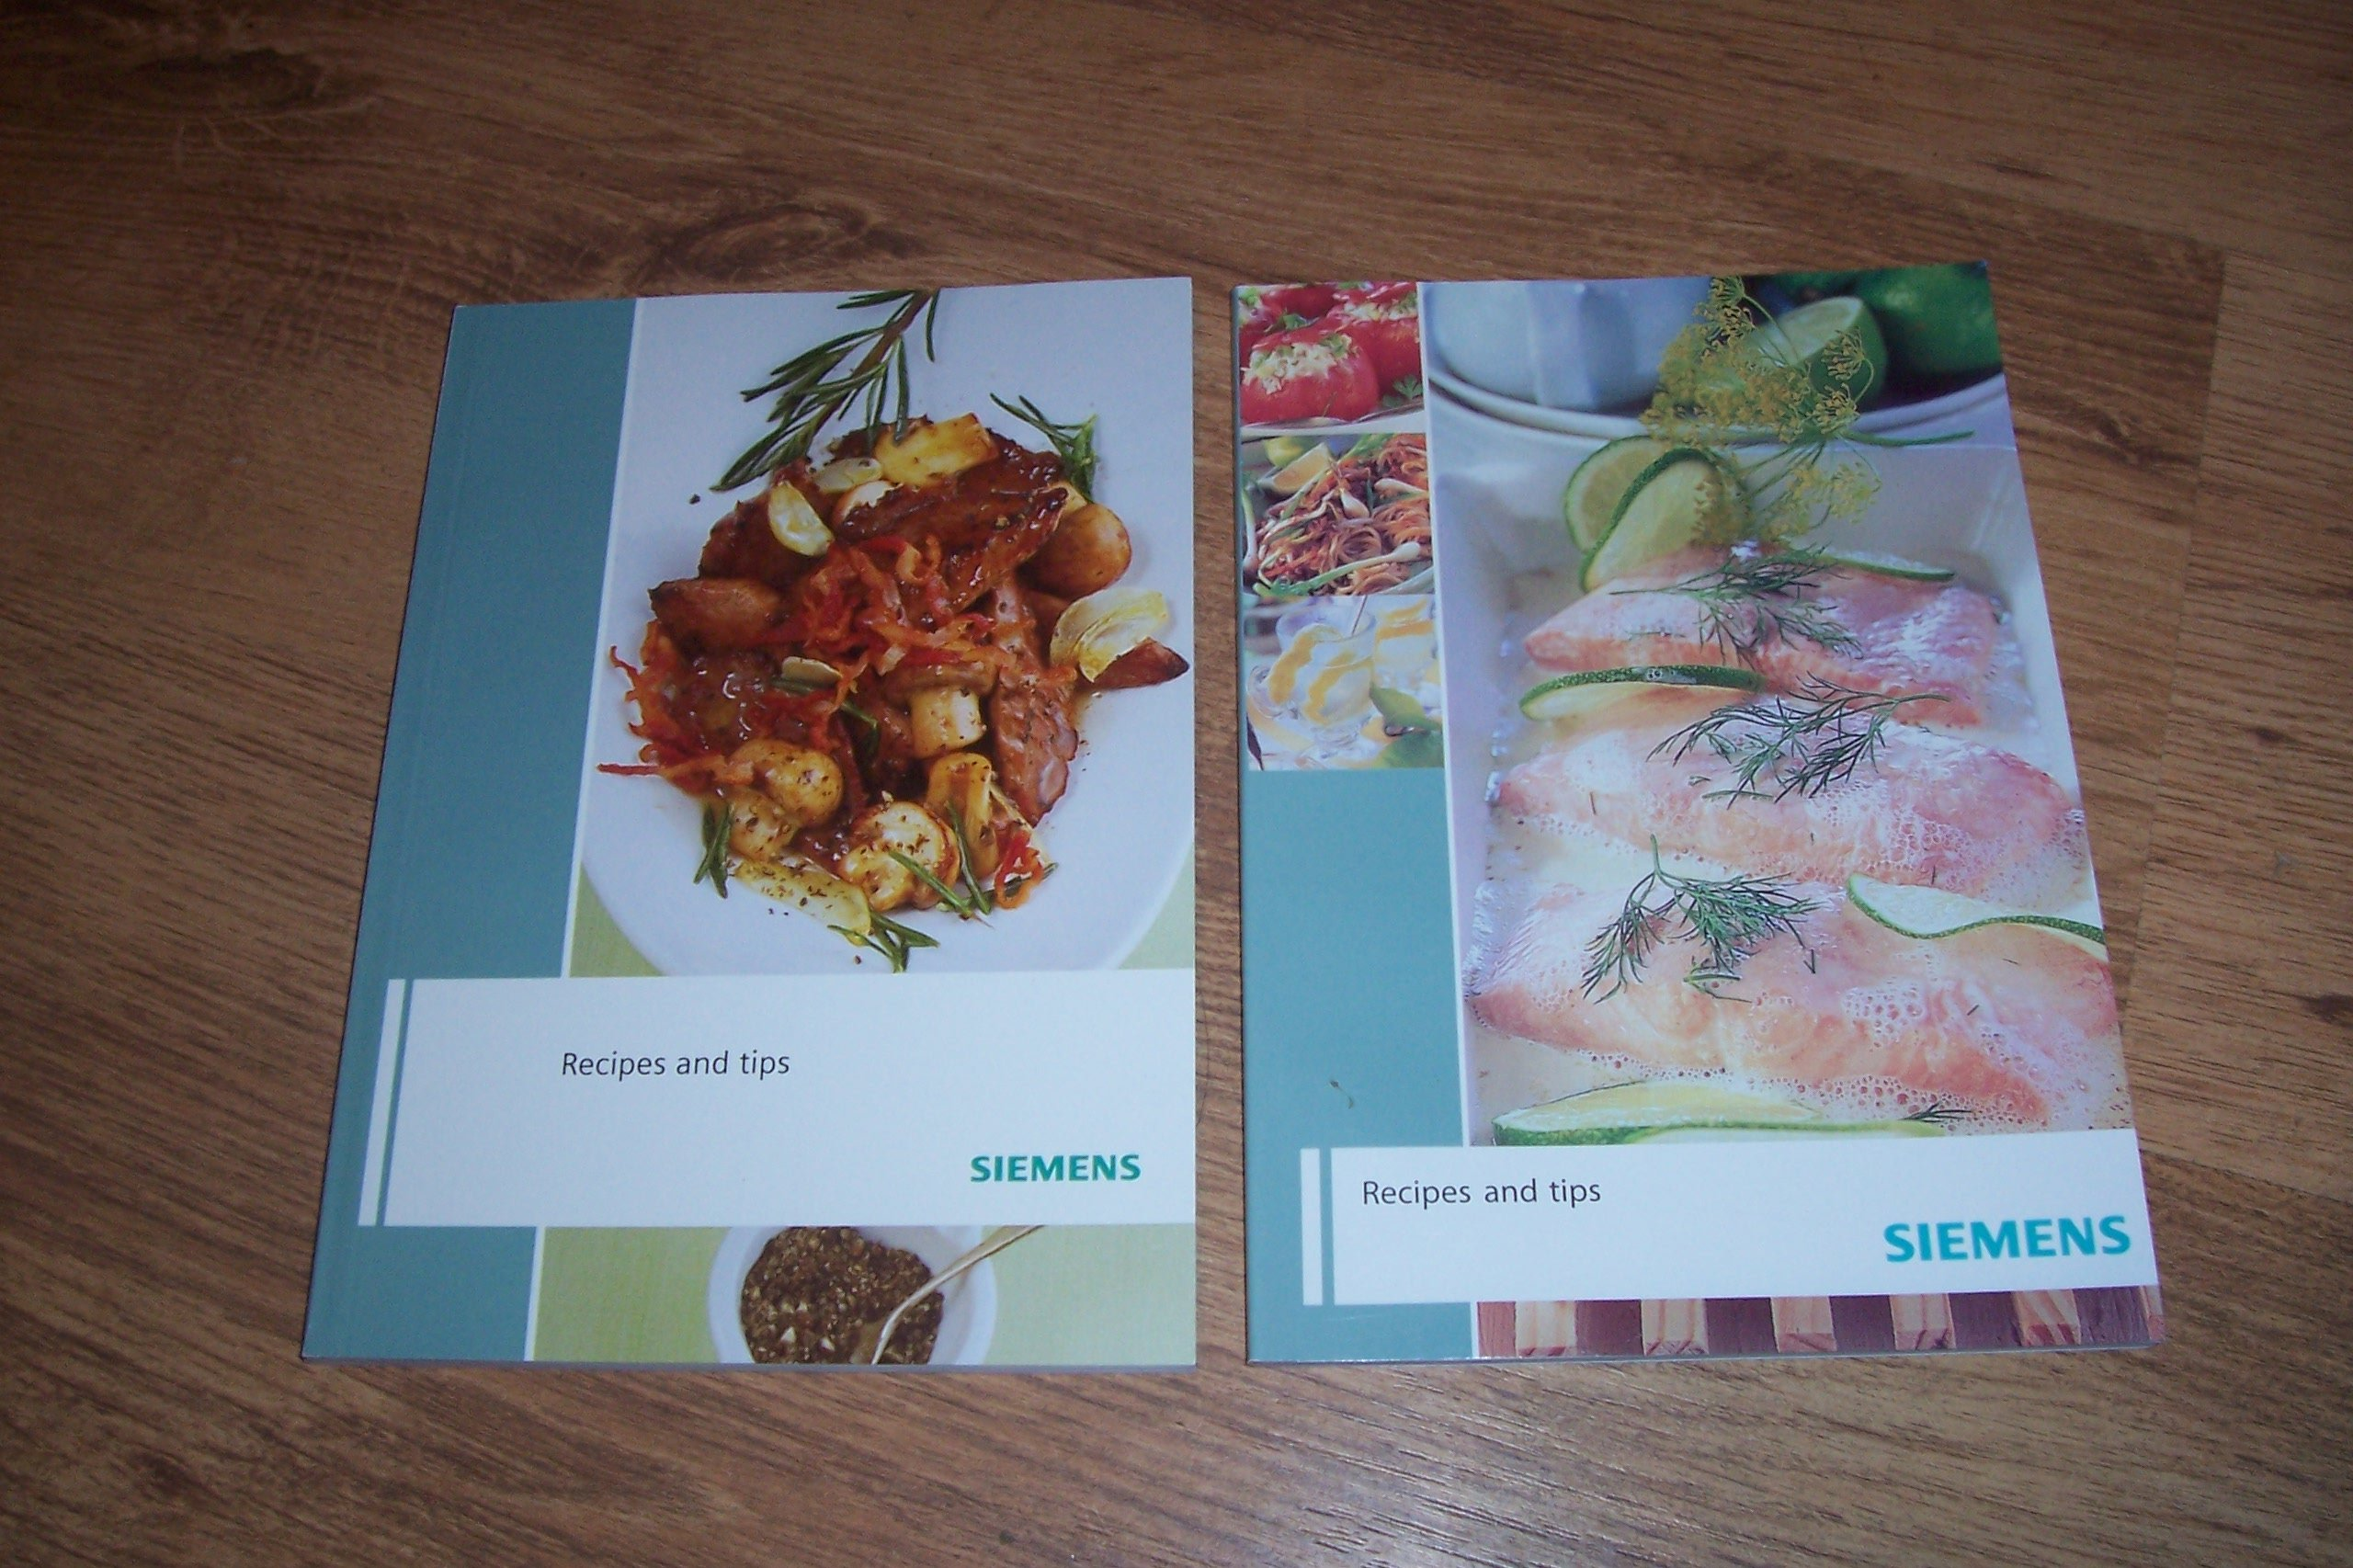 SIEMENS: Recipes and Tips (2 Books): Amazon co uk: Anon: Books